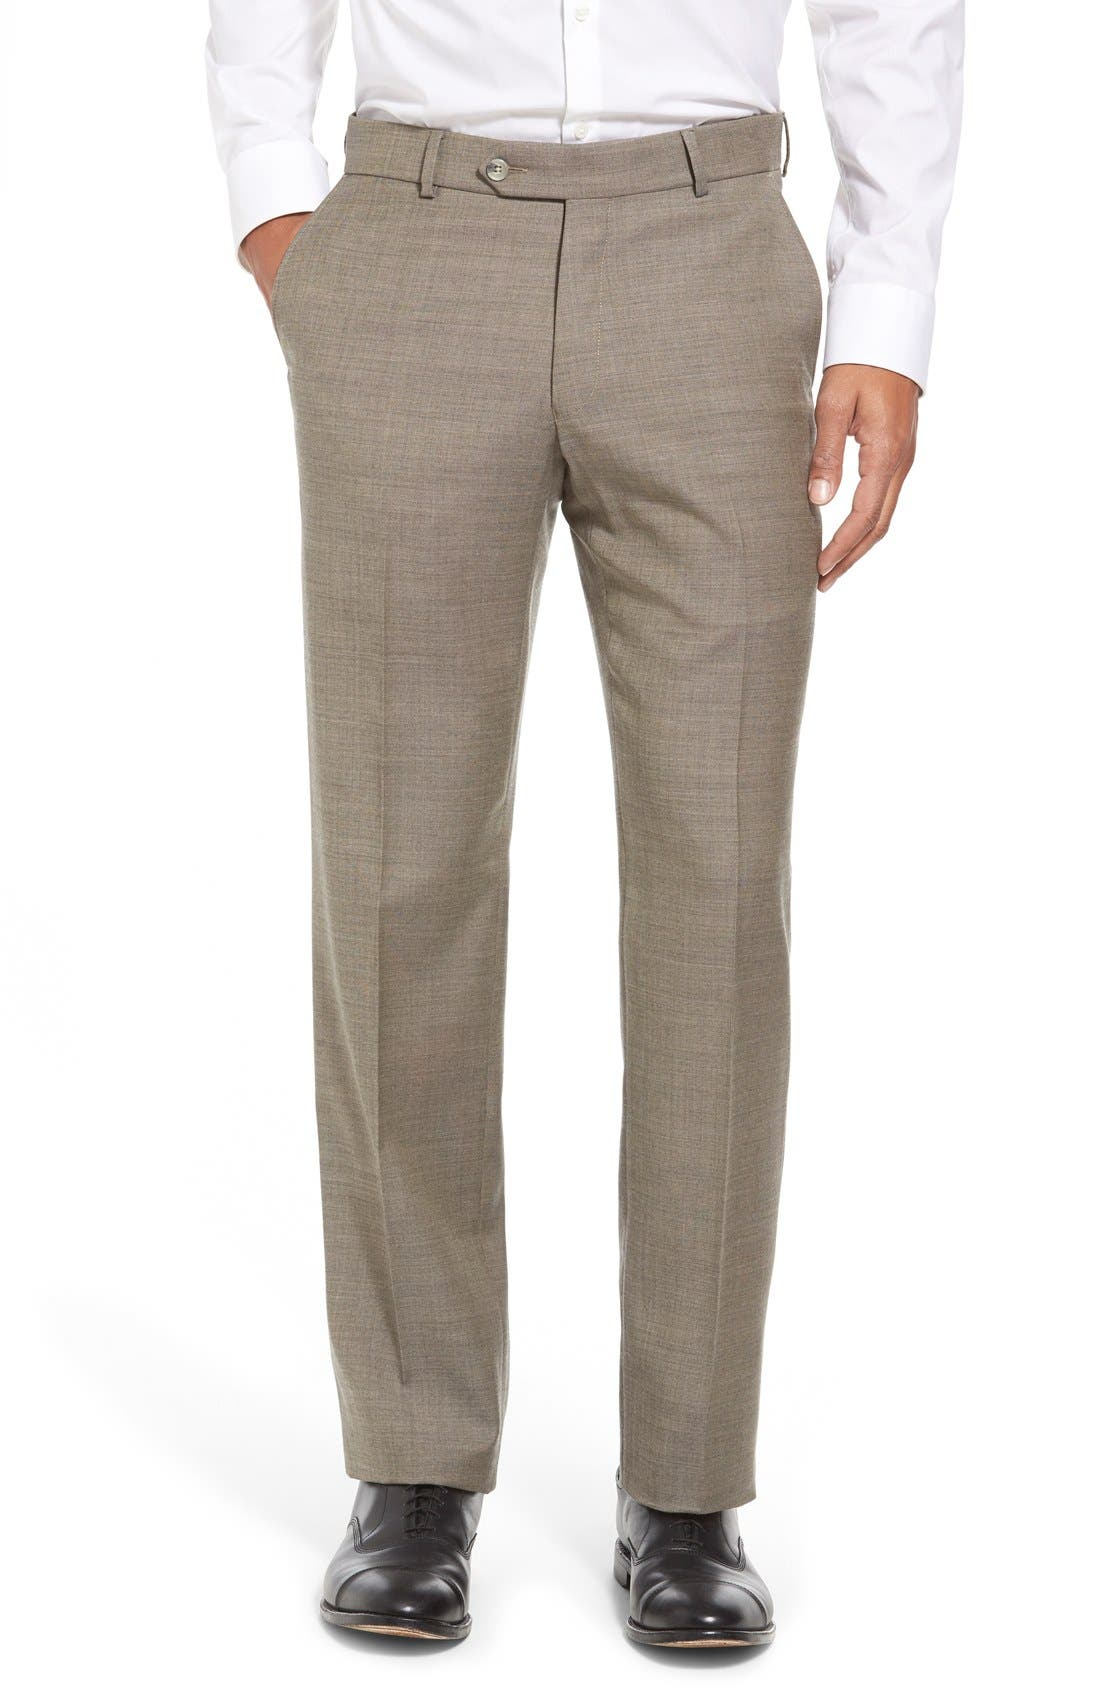 Flat Front Sharkskin Wool Trousers,                         Main,                         color, British Tan